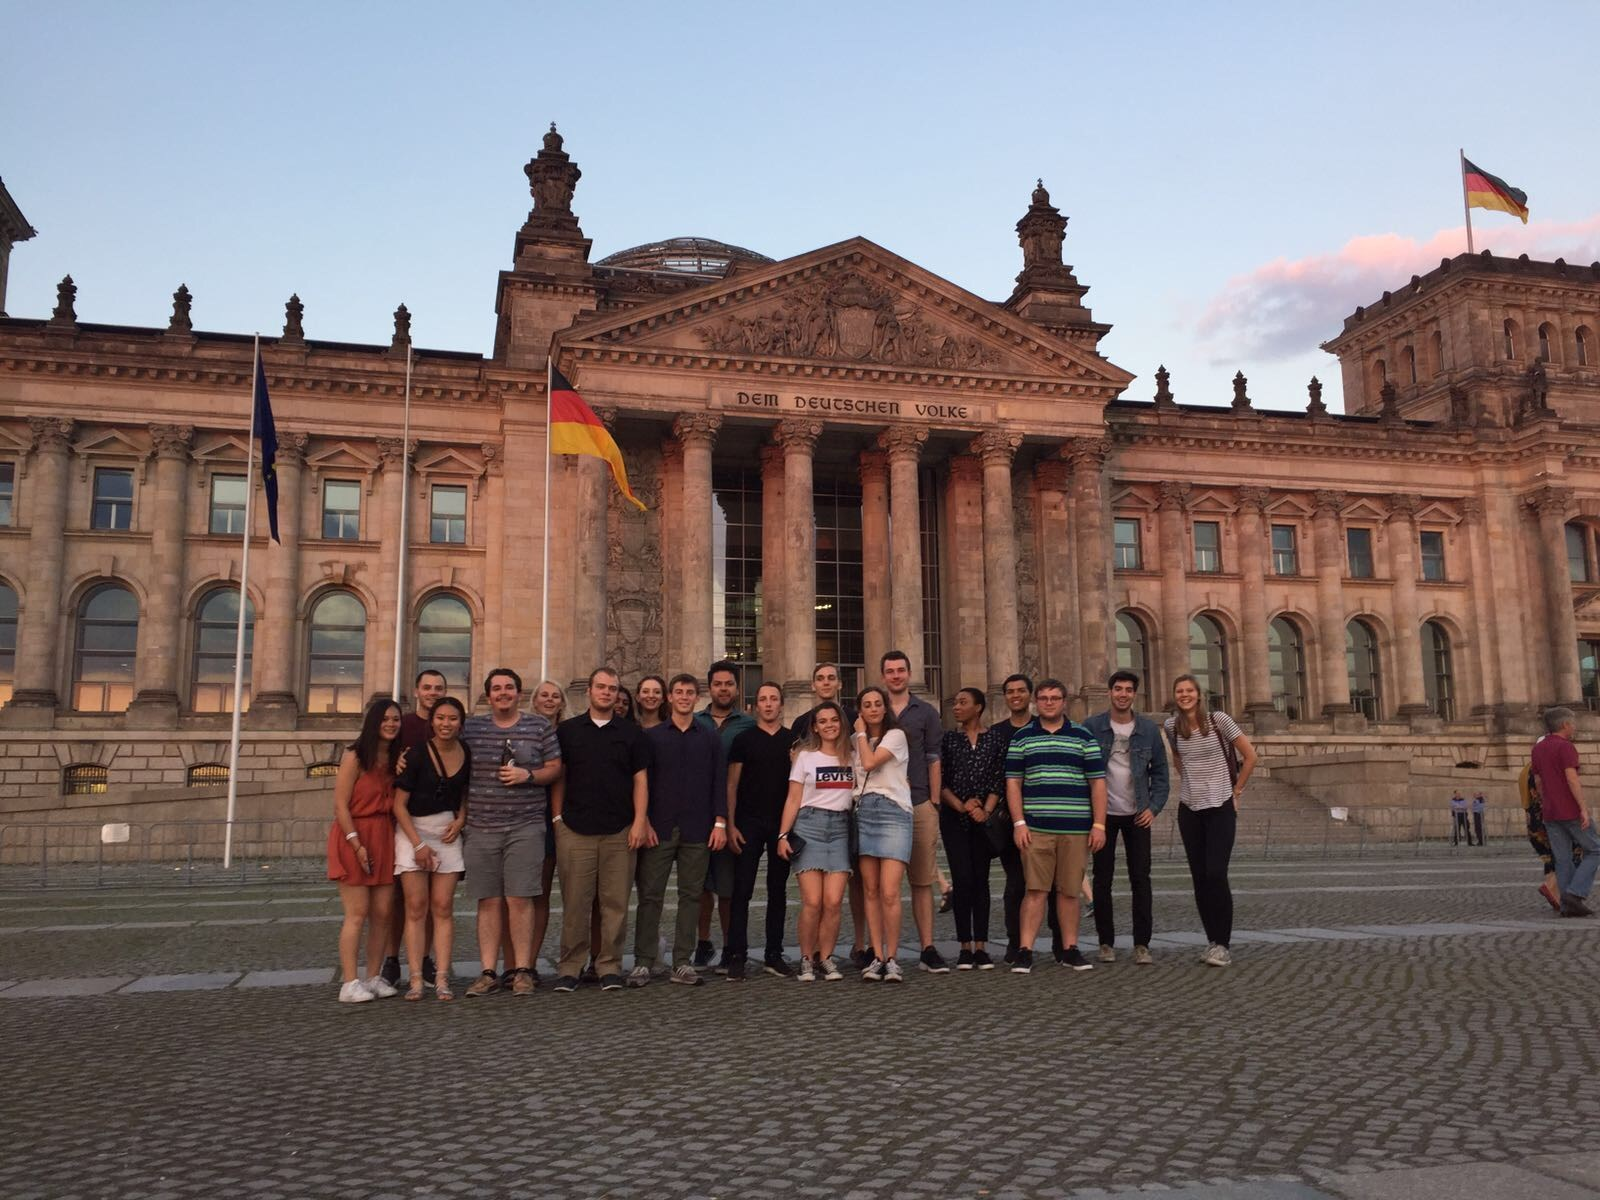 German government Reichstag in Berlin